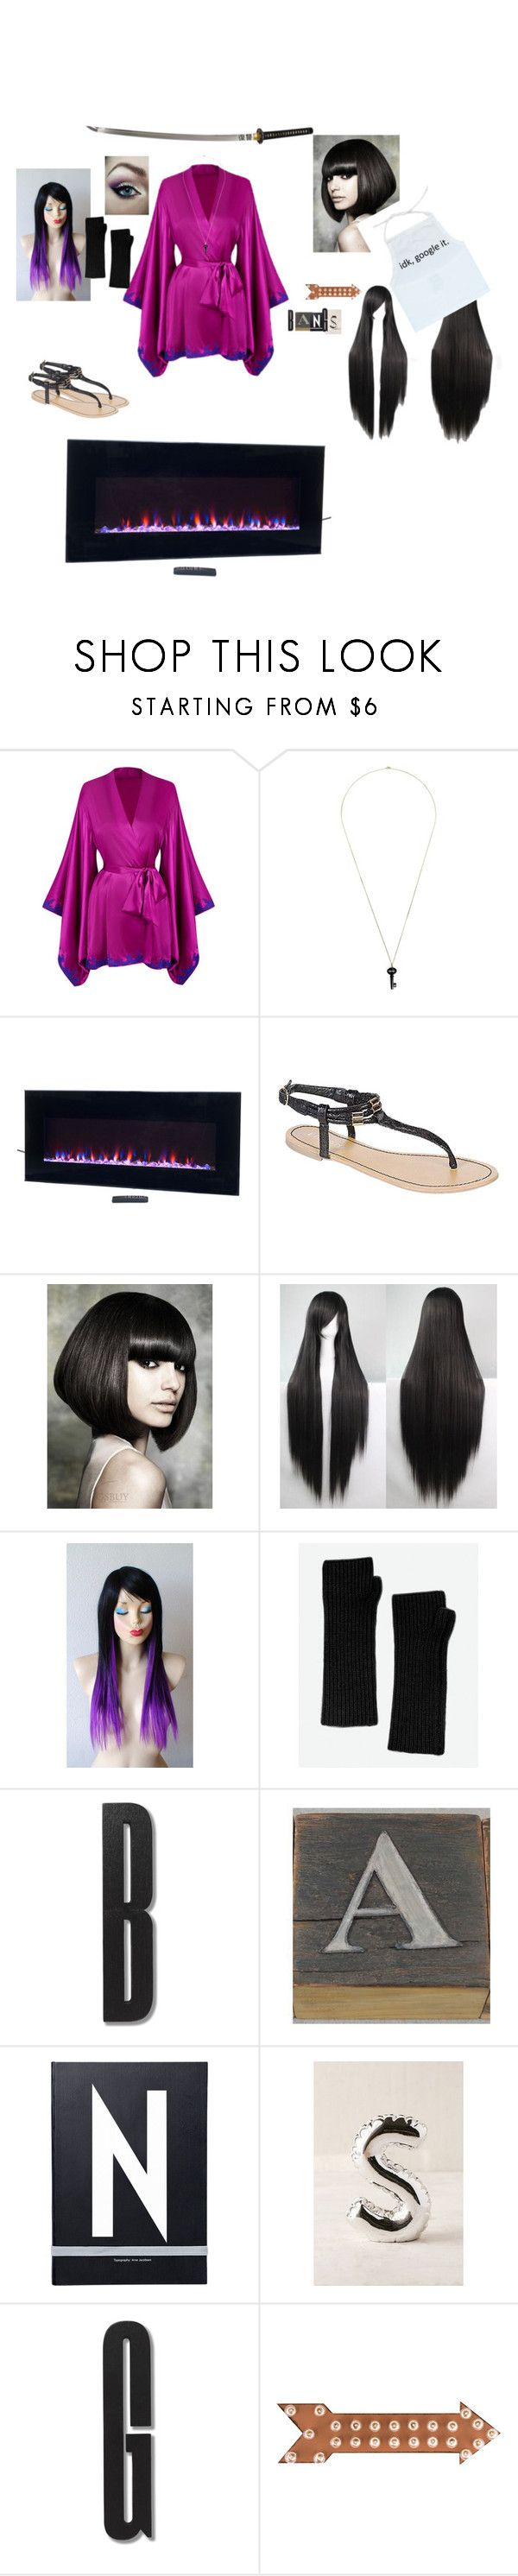 """""""Katana random"""" by secretz-007 ❤ liked on Polyvore featuring Agent Provocateur, Kristin Hanson, TradeMark, Liliana, Exclusive for Intermix, Design Letters, Sixtrees and Dot & Bo"""